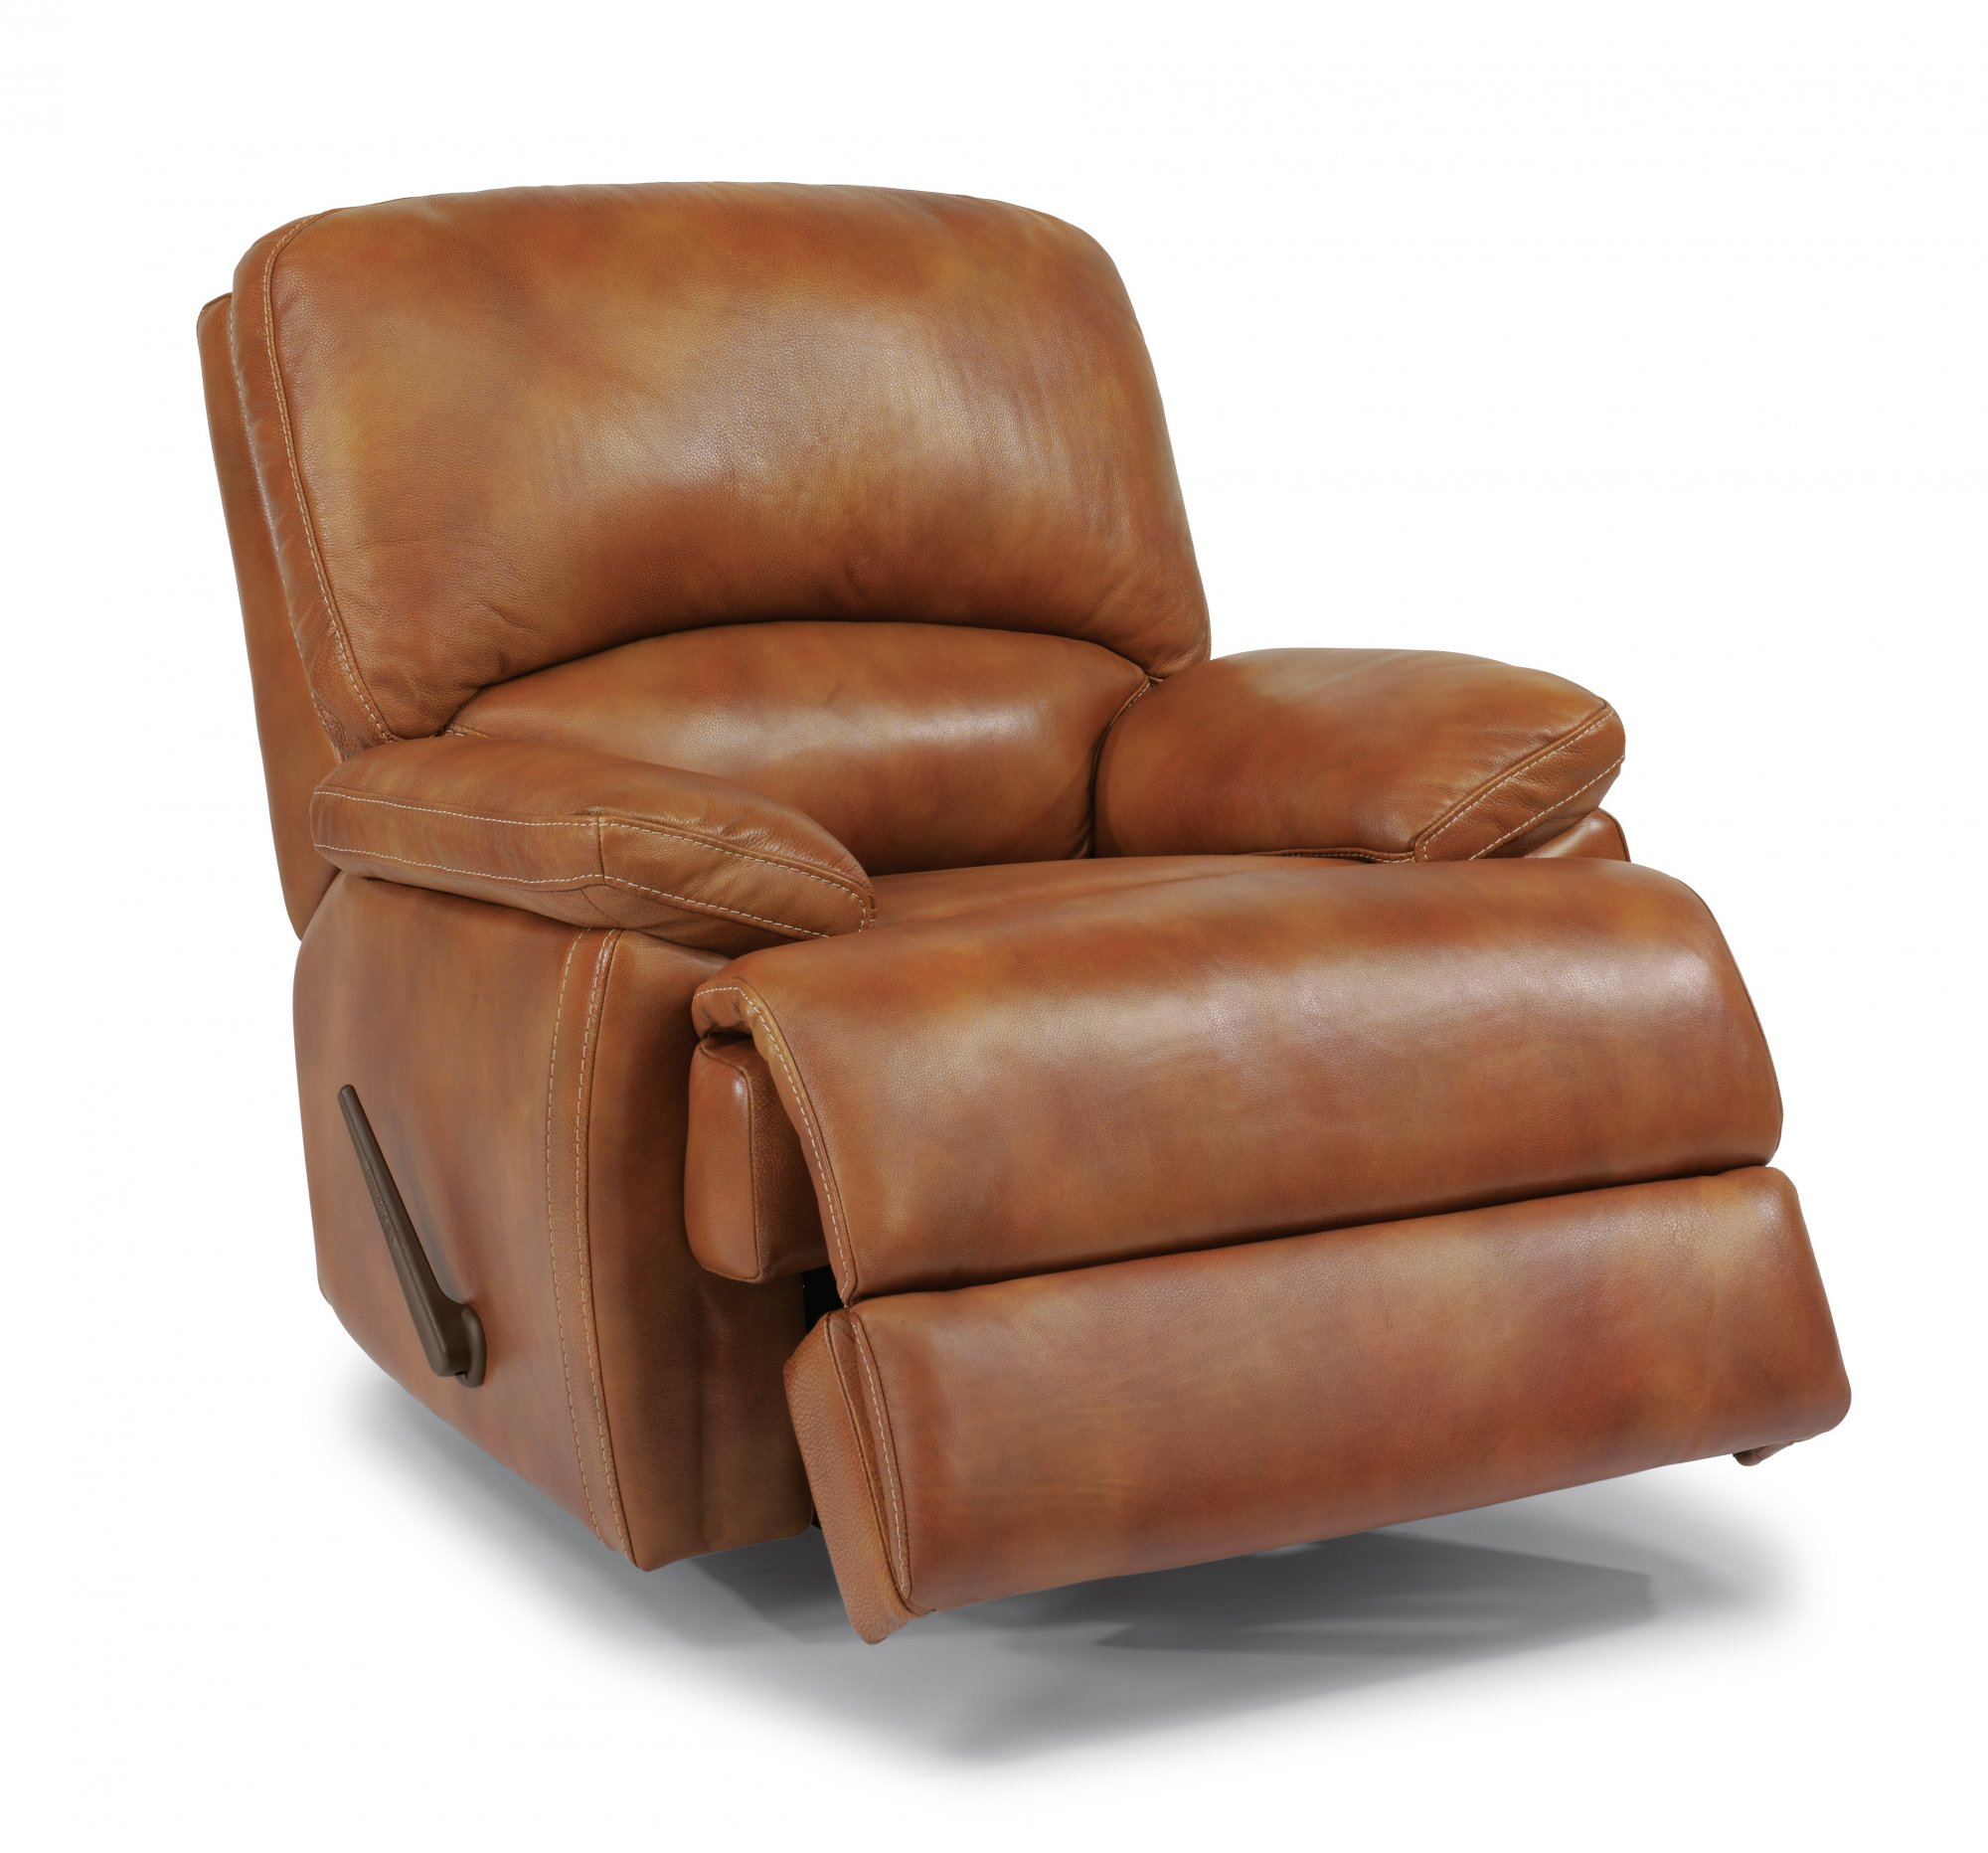 to for room go swivel living of glider barn bearings restoration hardware furniture nursery recliner covers chair your chairs parts home depot replacement carson pottery rooms pads full size rocking patio